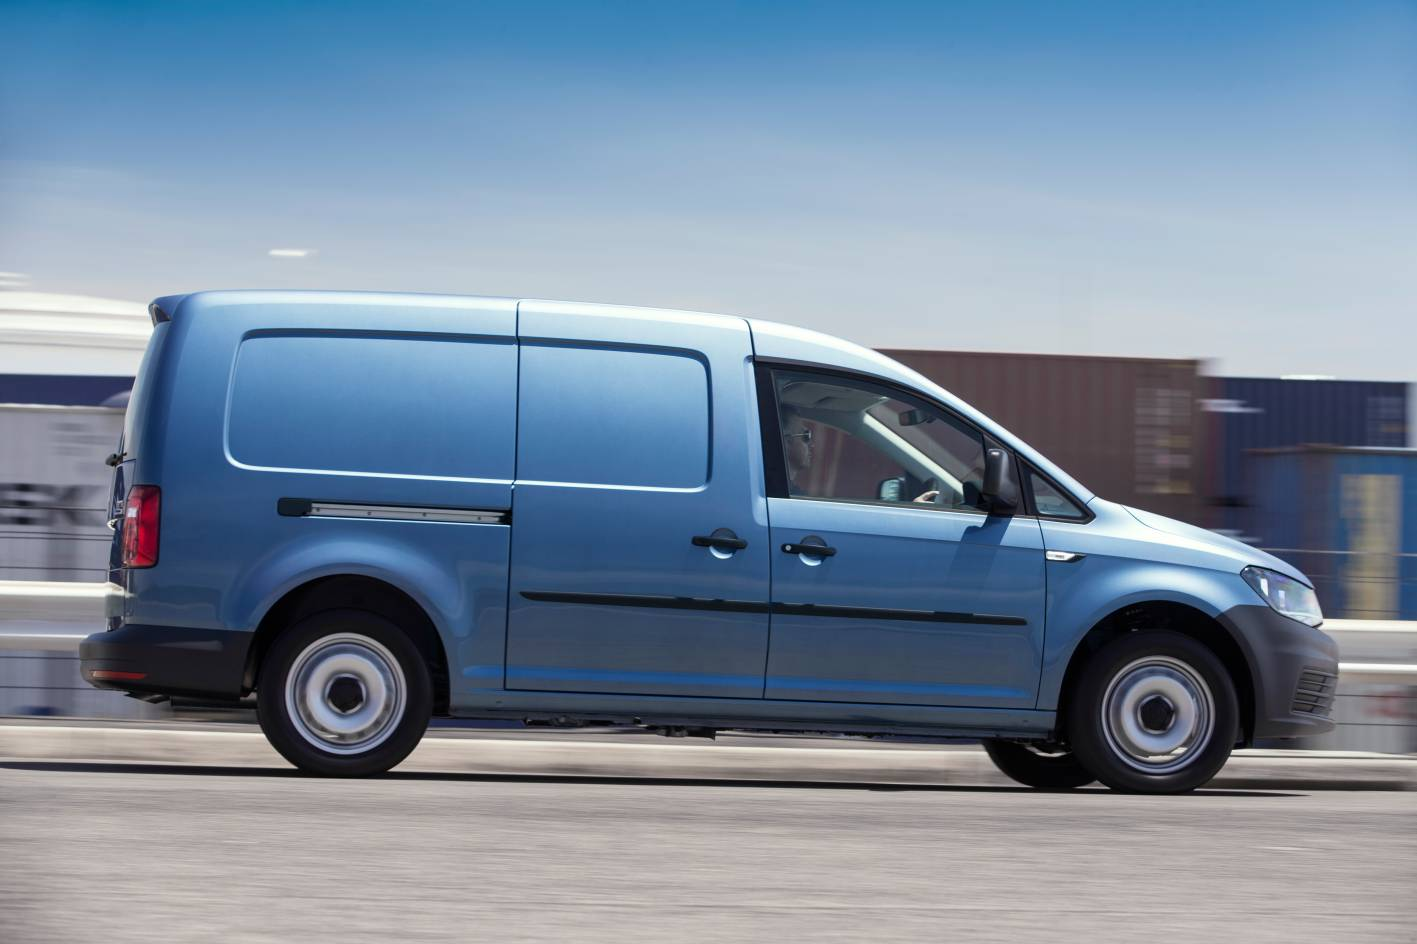 volkswagen commercial vehicles australia releases updated caddy van and people mover tsi range. Black Bedroom Furniture Sets. Home Design Ideas